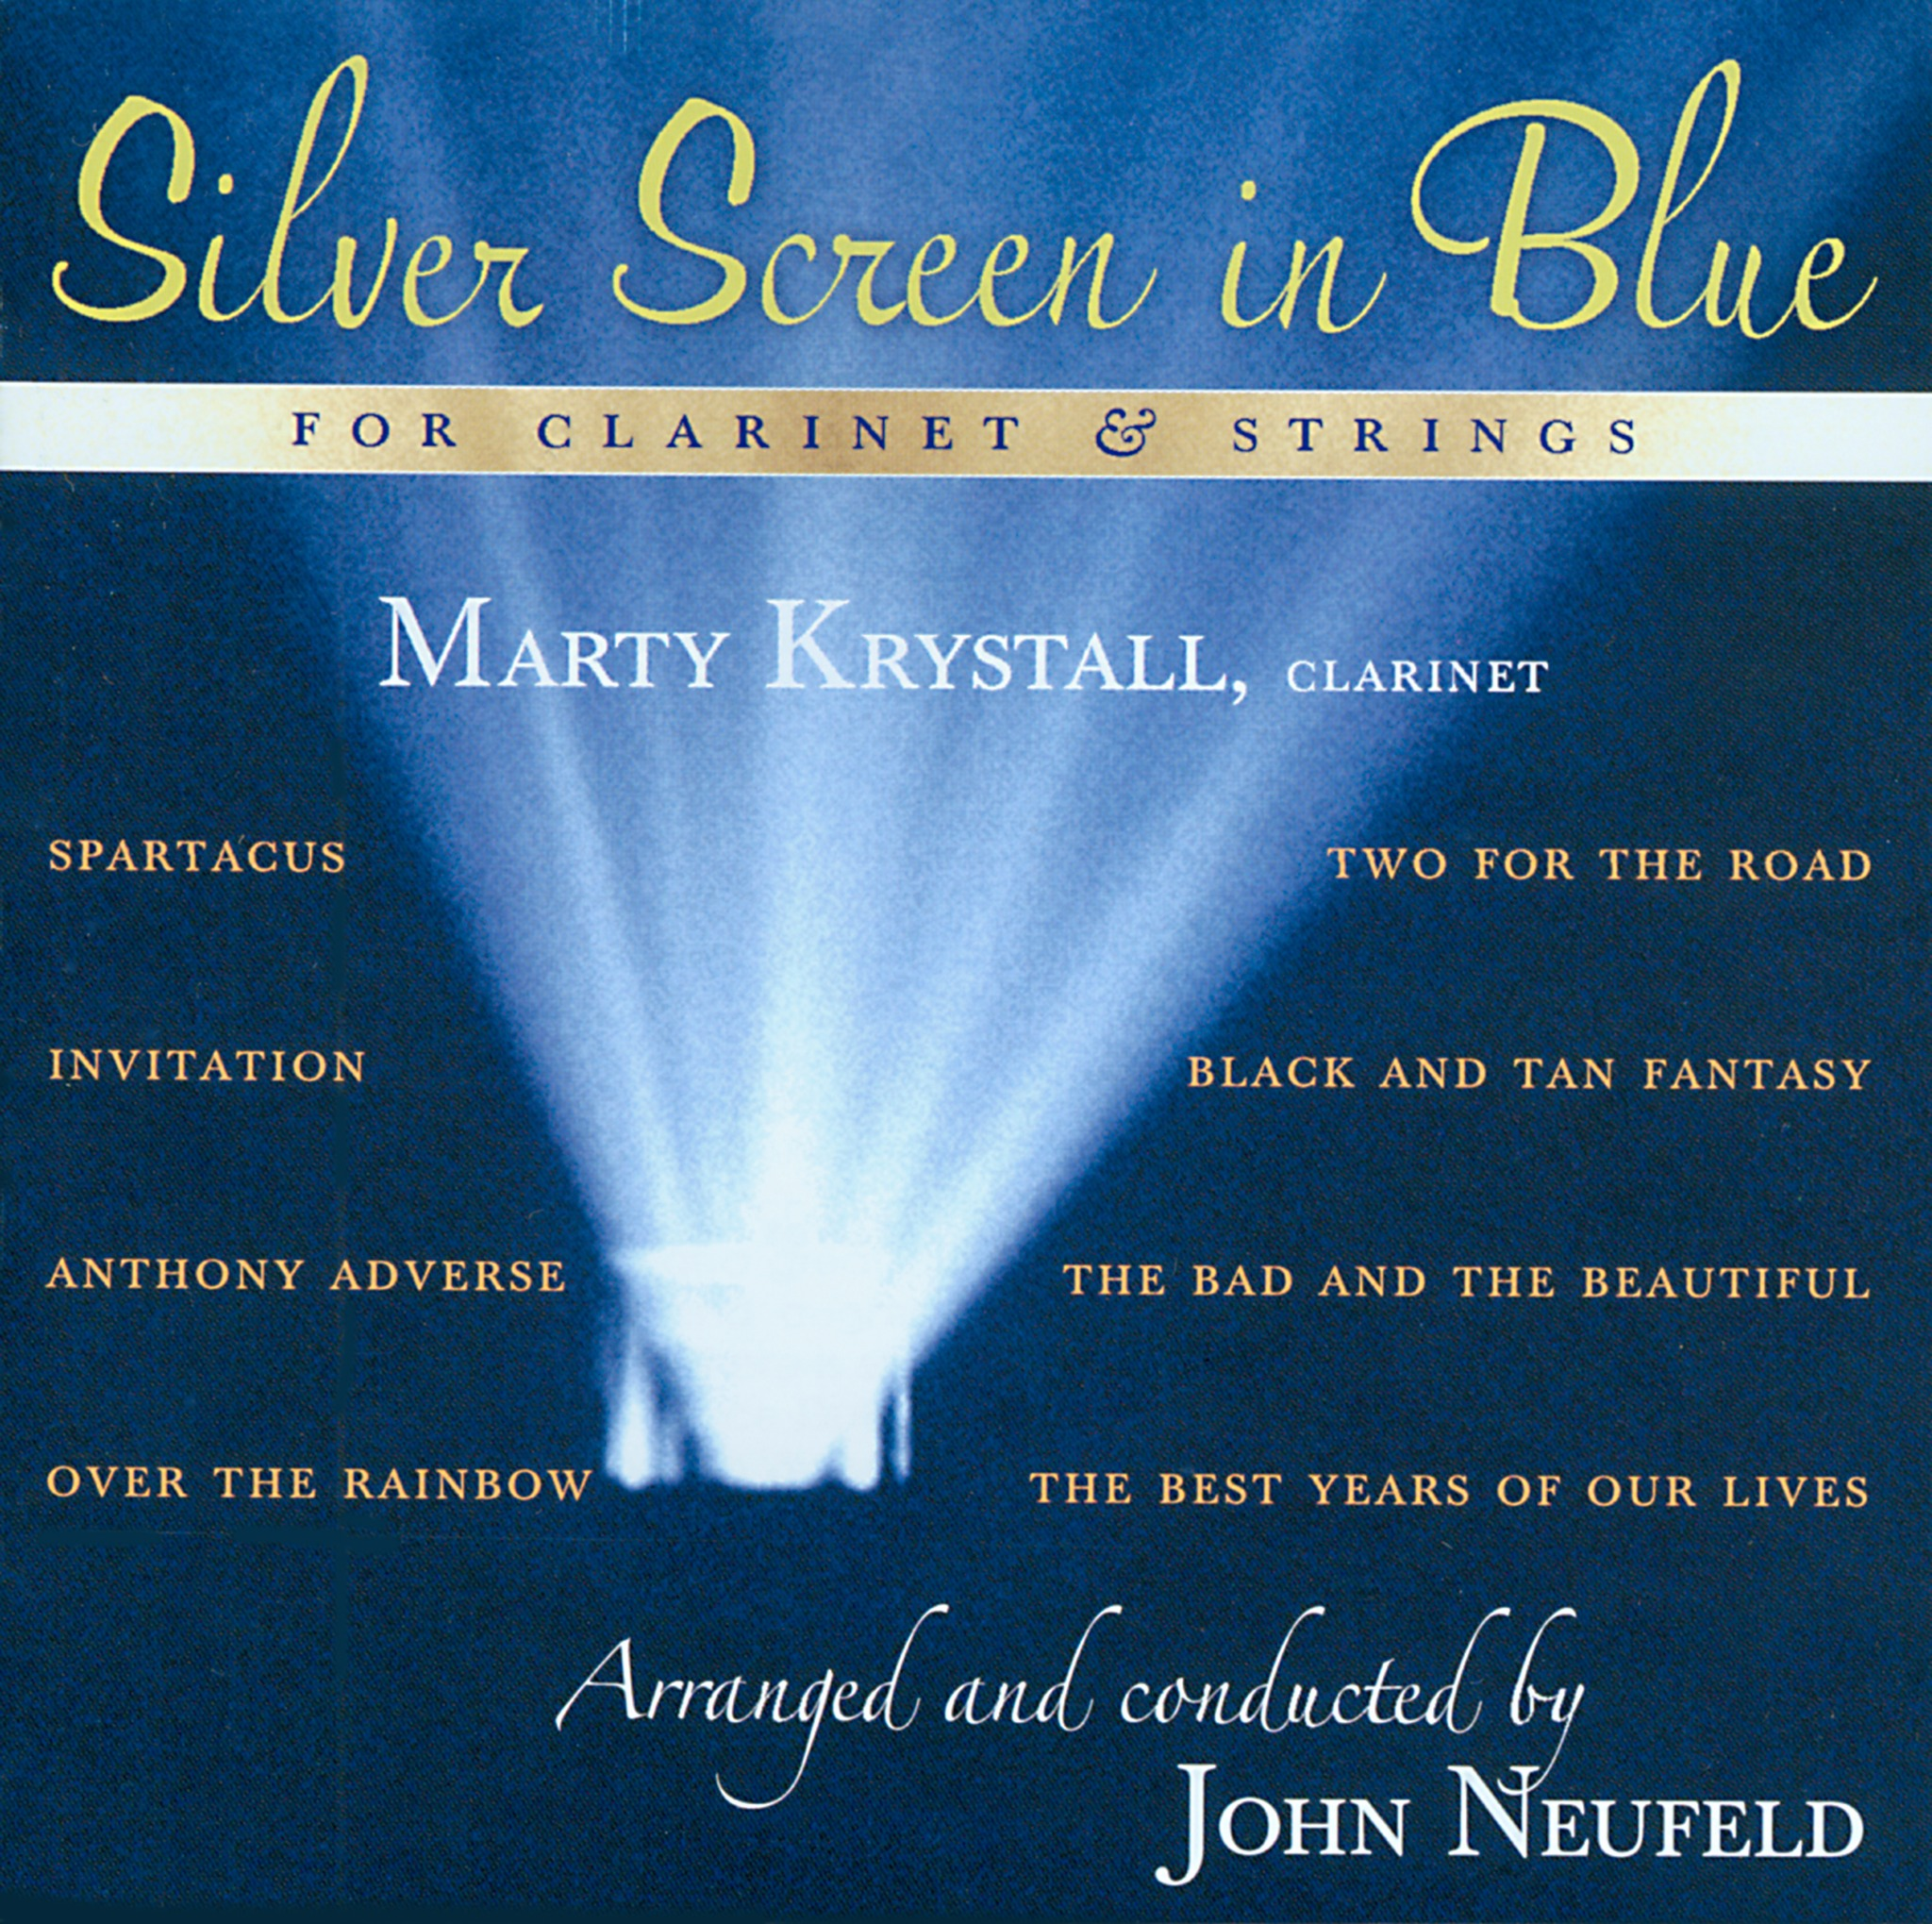 Marty Krystall - Silver Screen in Blue for Clarinet and Strings CD